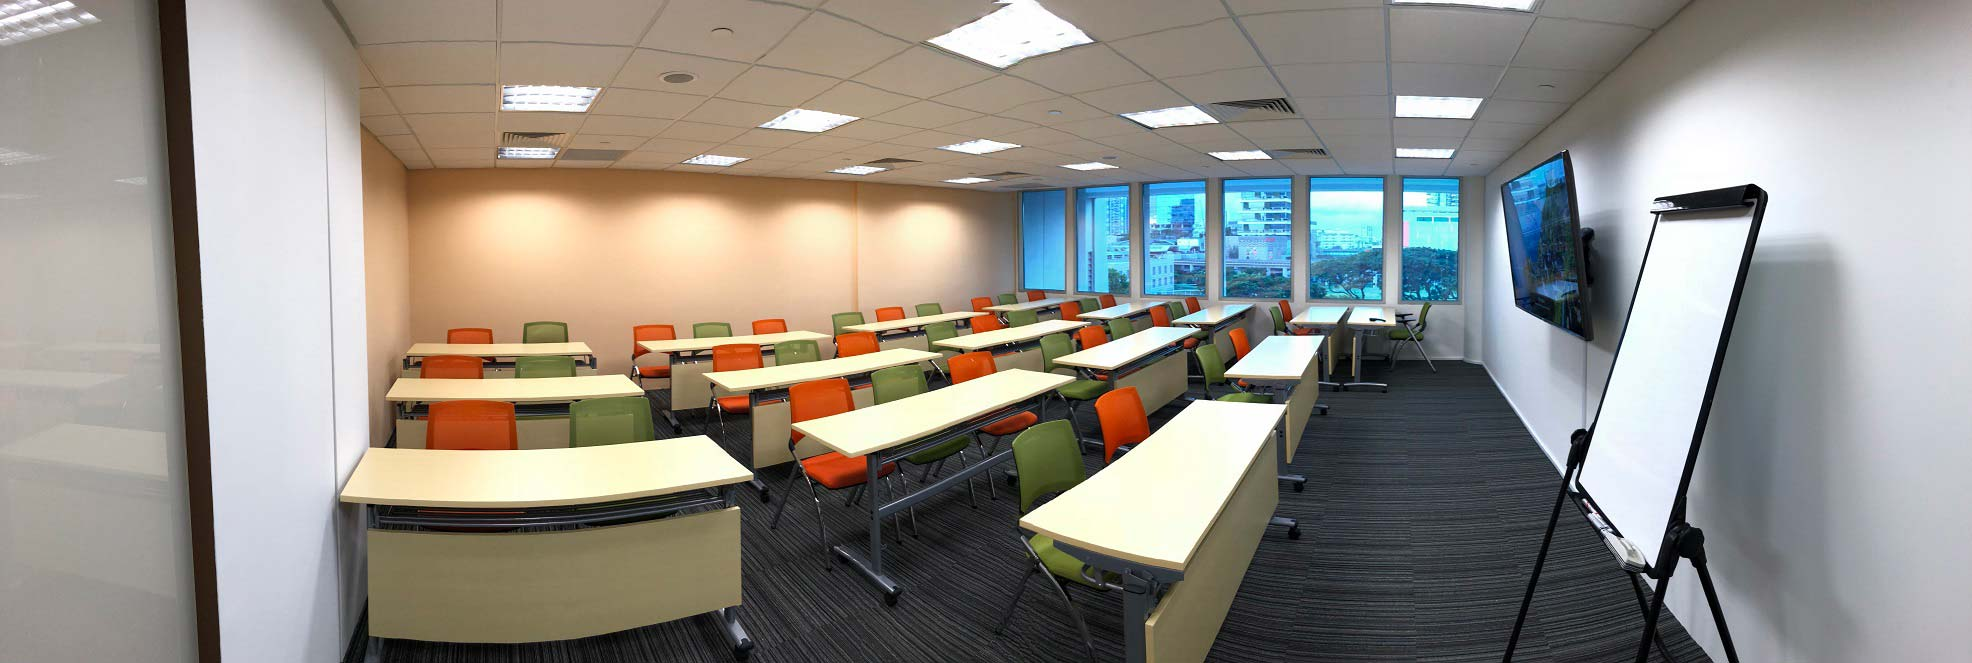 Training Classroom at SIPMM